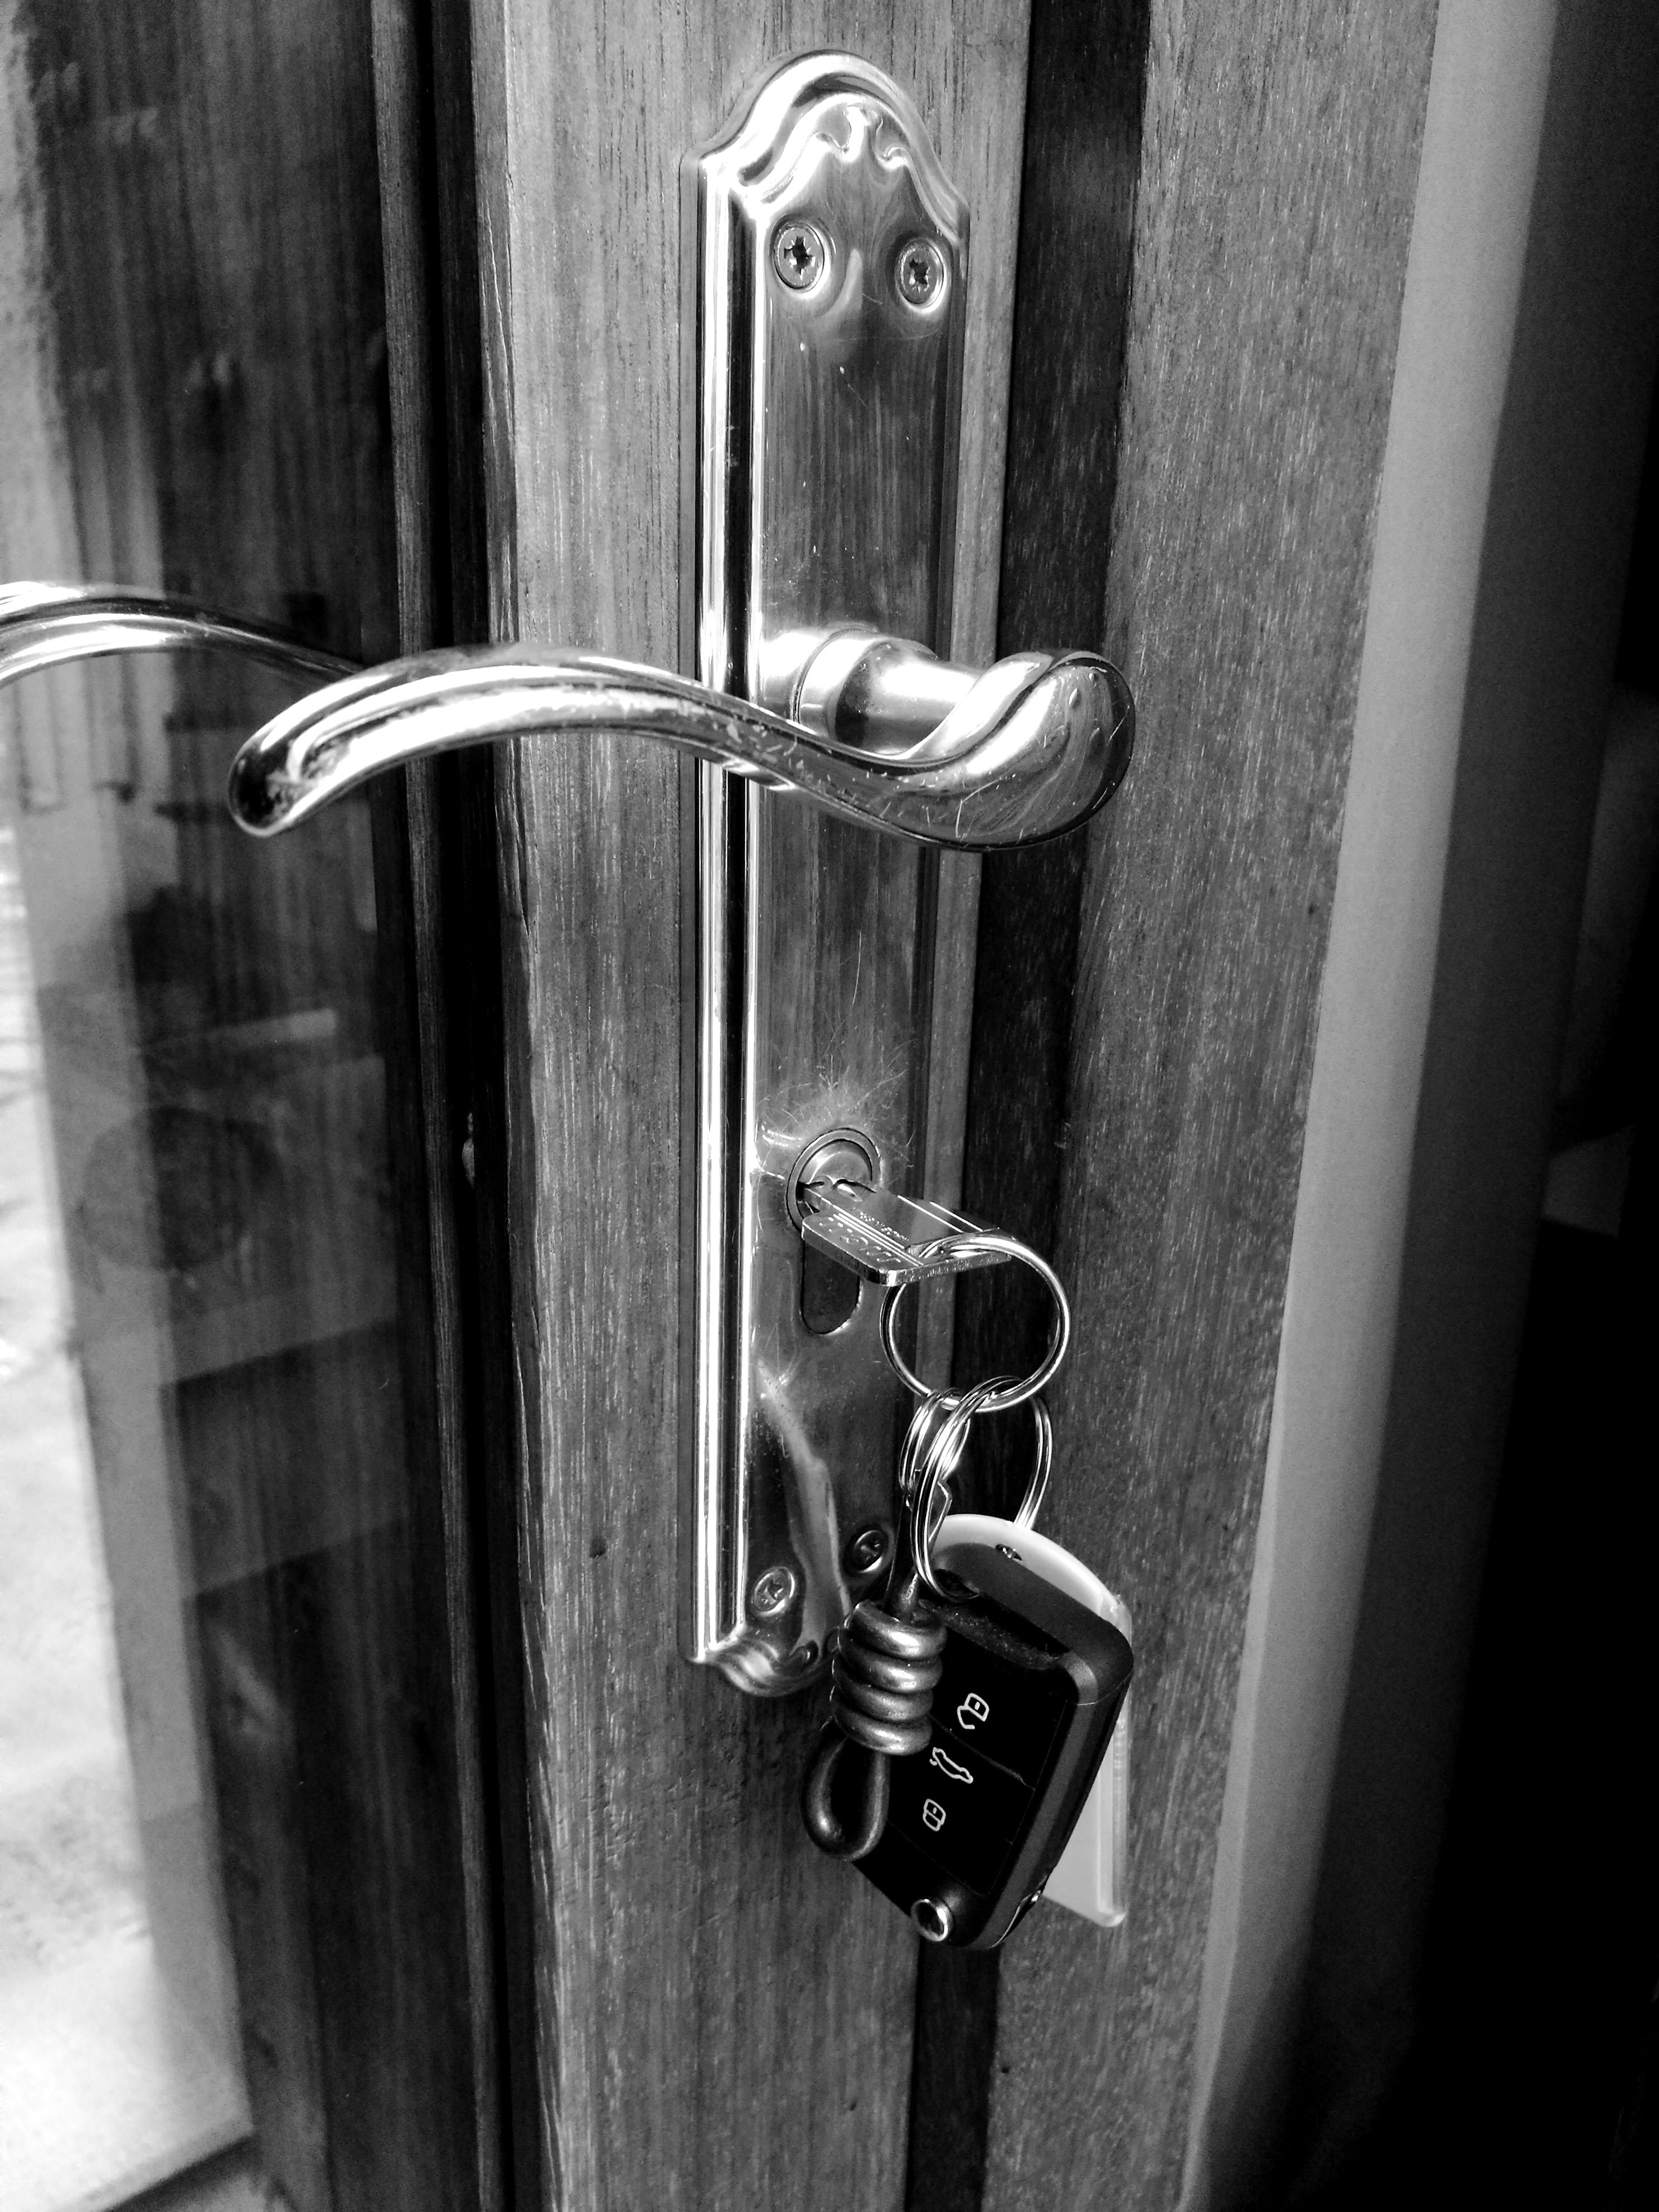 Free stock photo of #key #door #closed